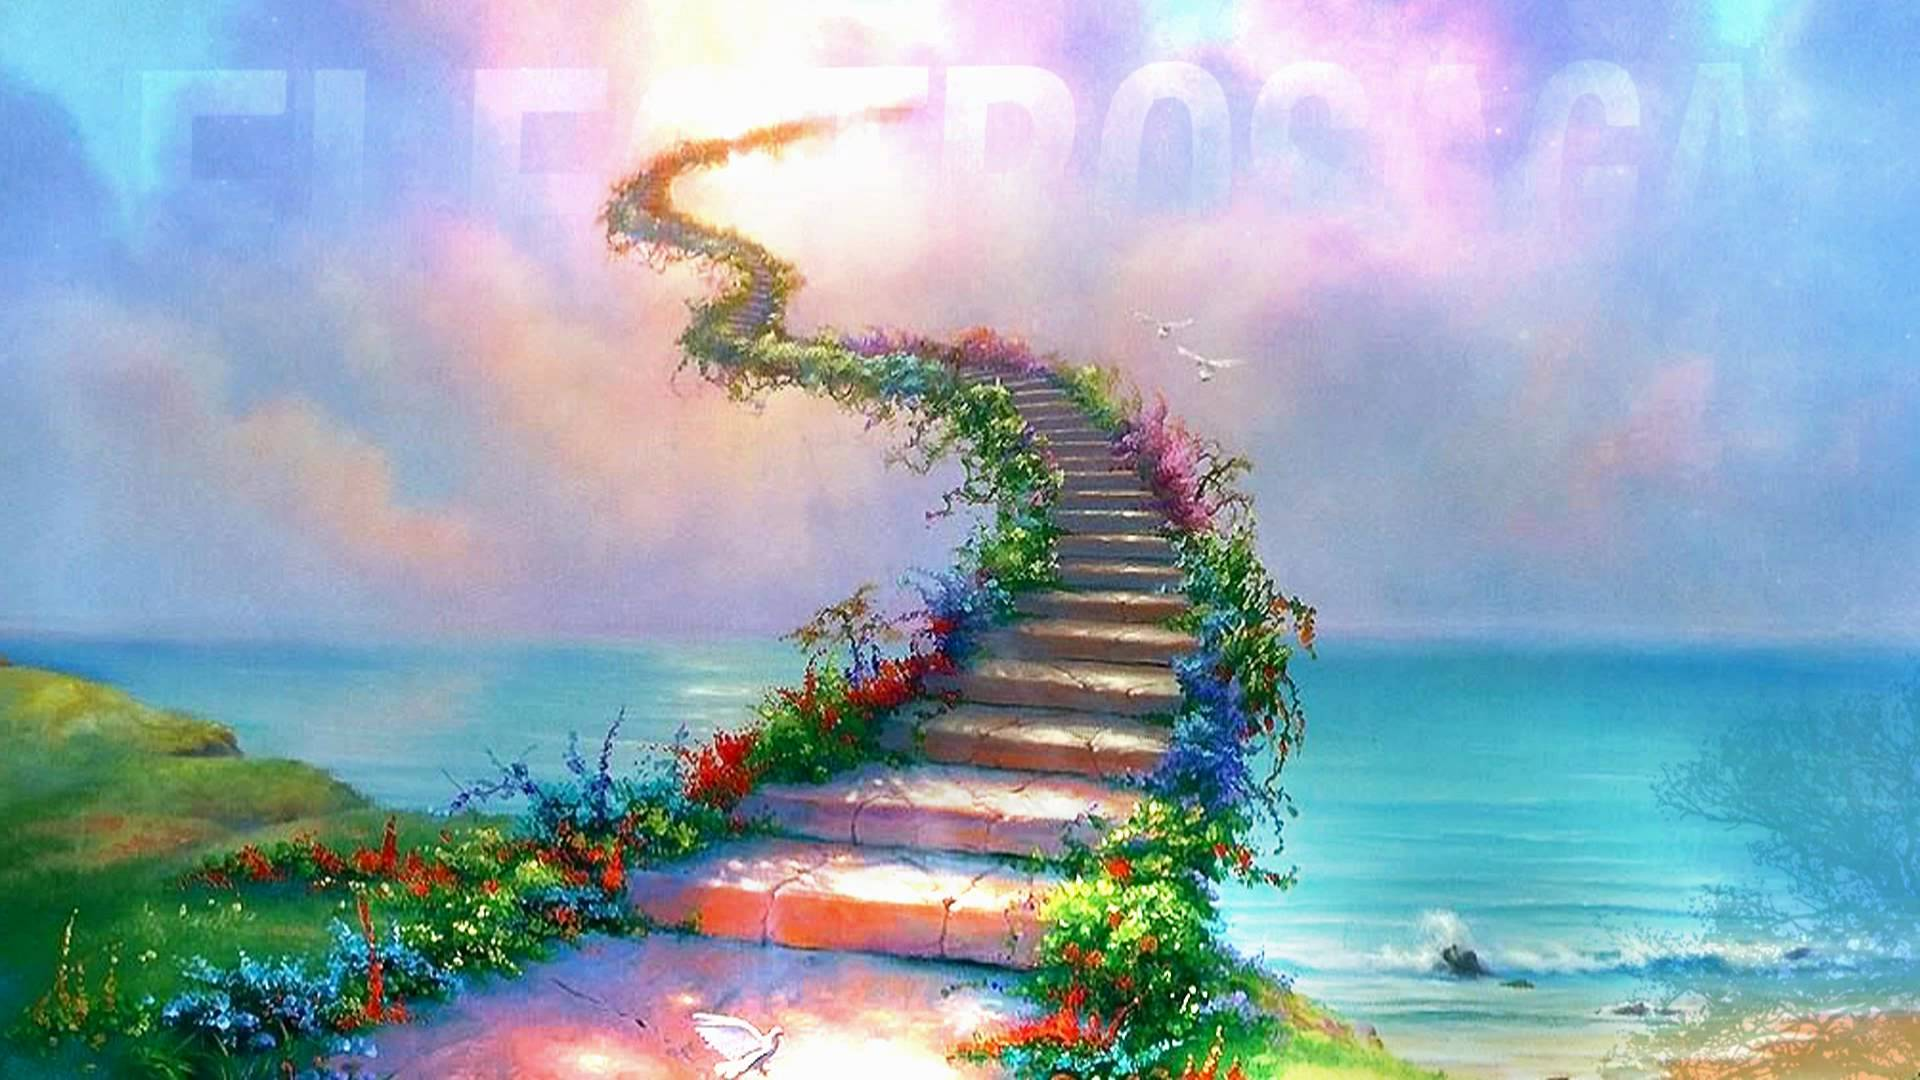 Heaven clipart hd wallpaper To stairway Electrosaga) to (44+)